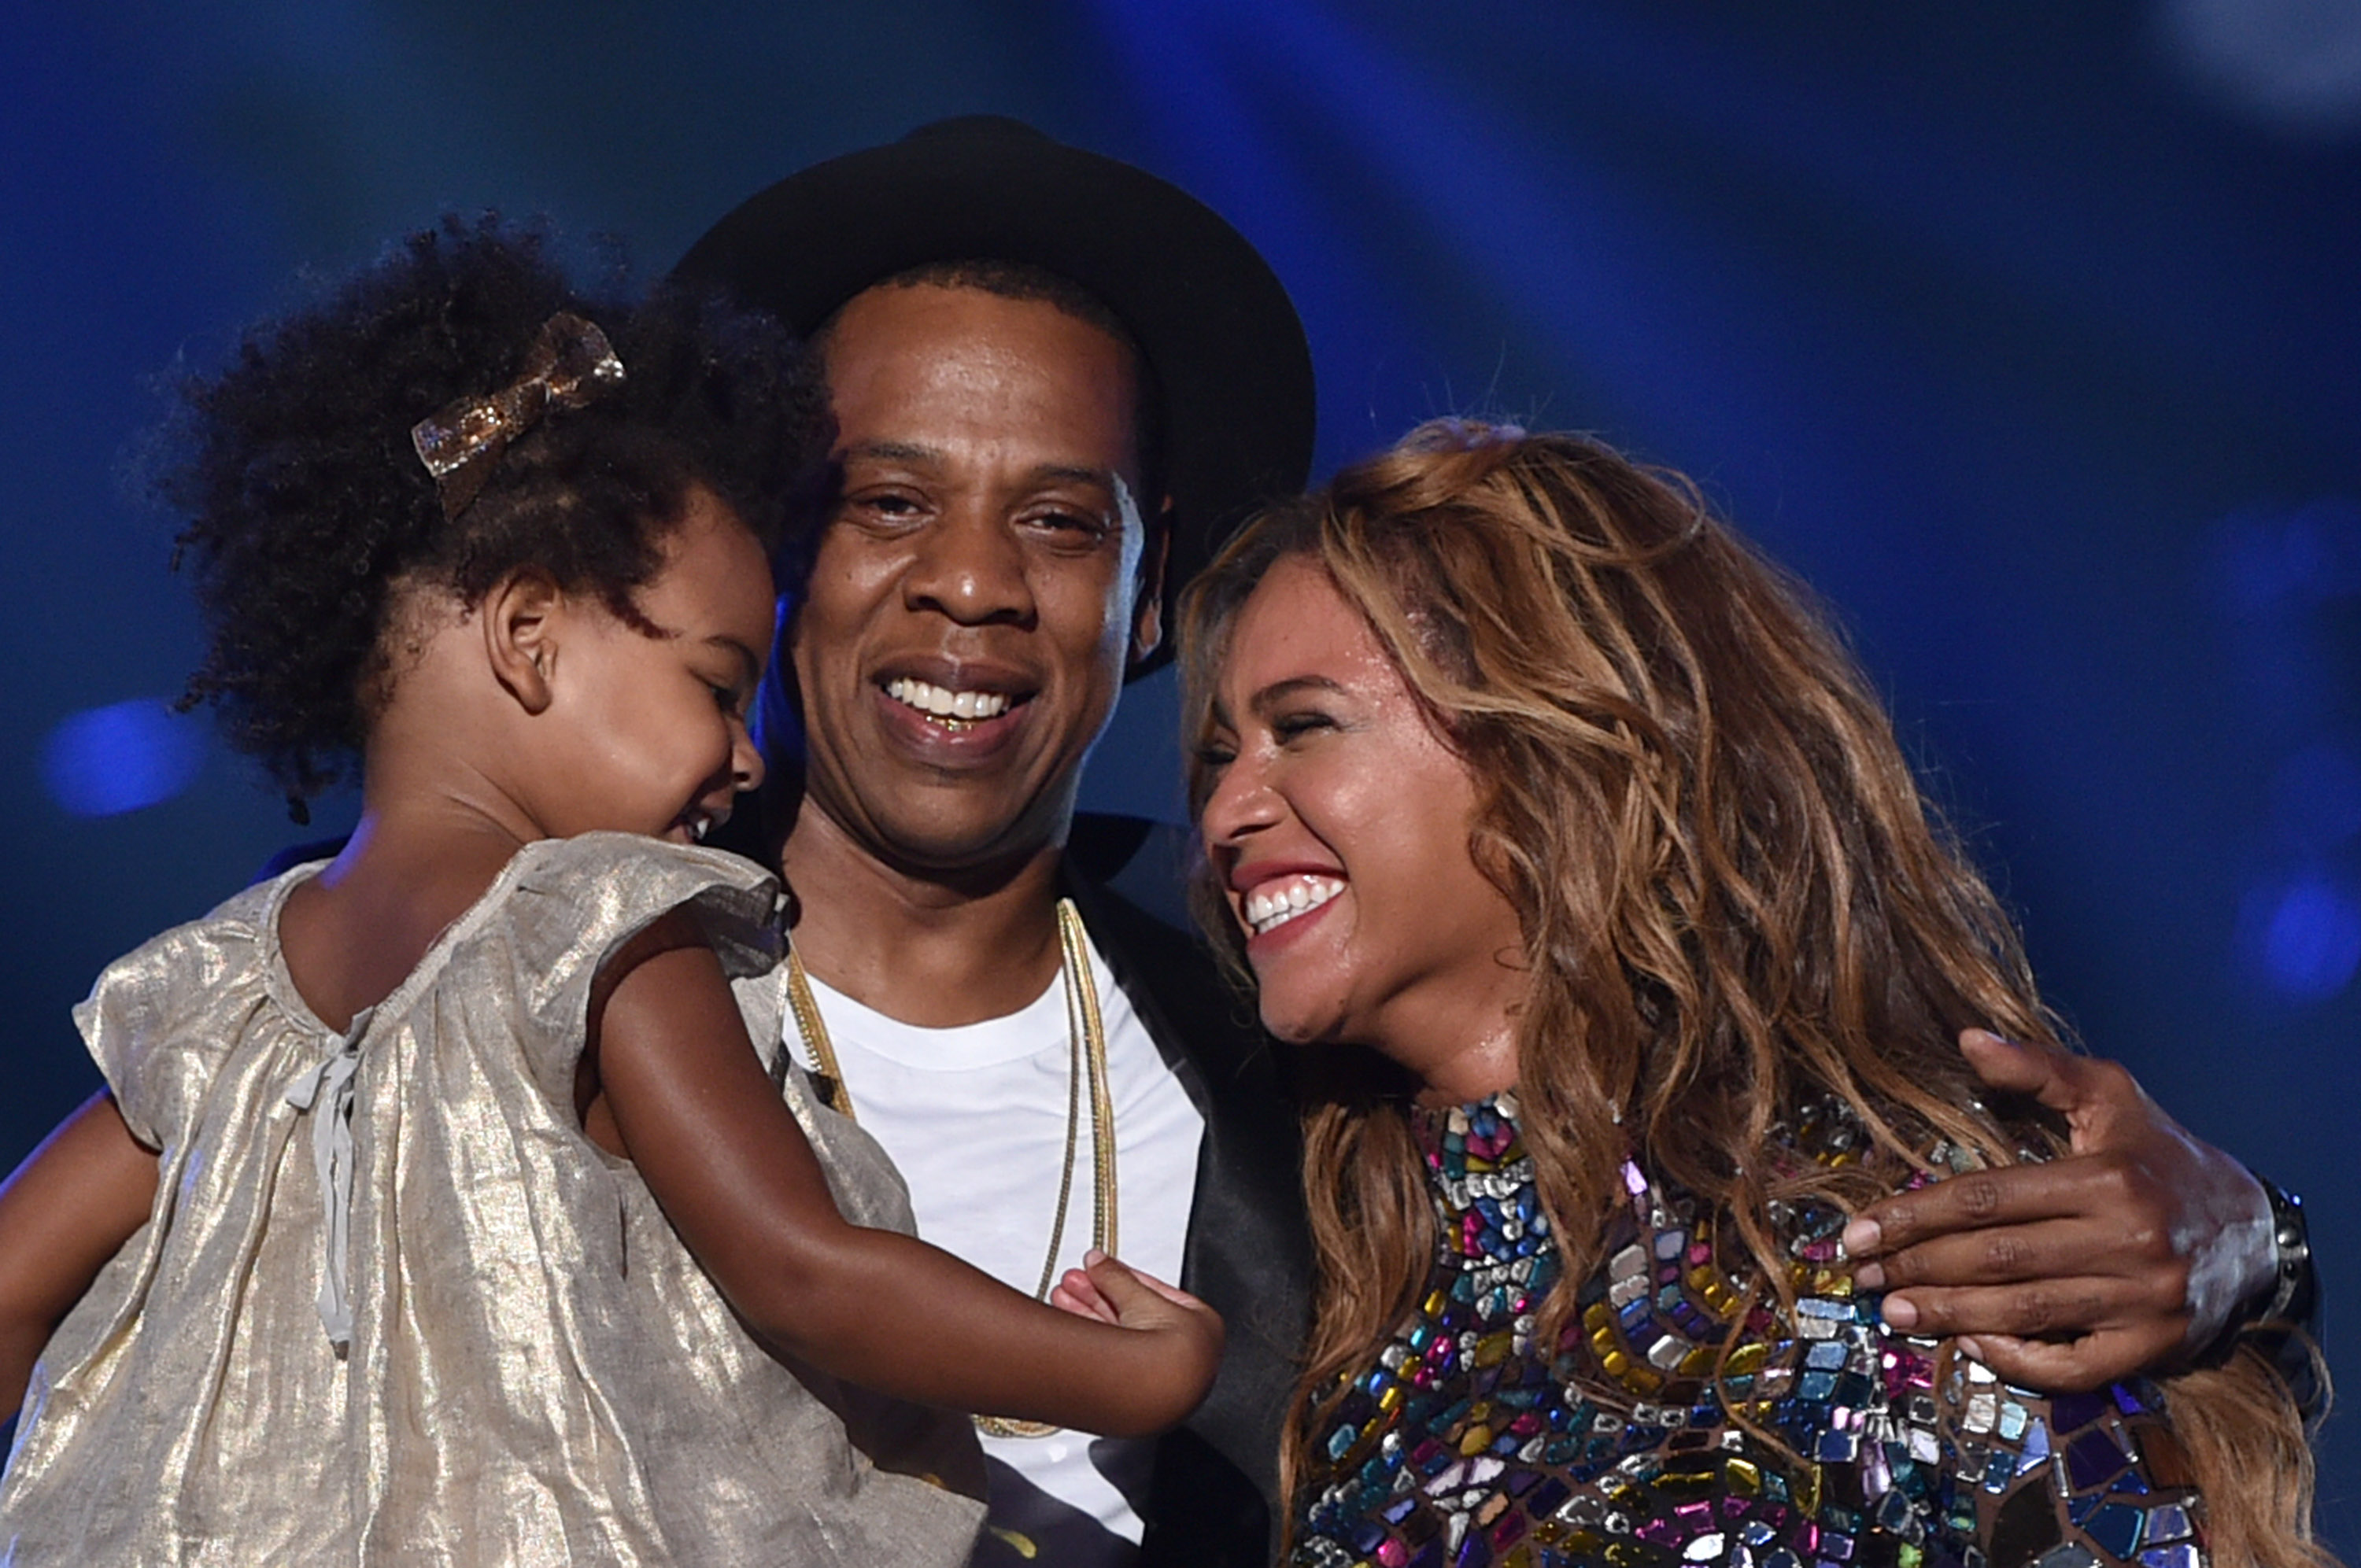 What's The Most Beautiful Thing Blue Ivy Ever Said To Jay-Z?